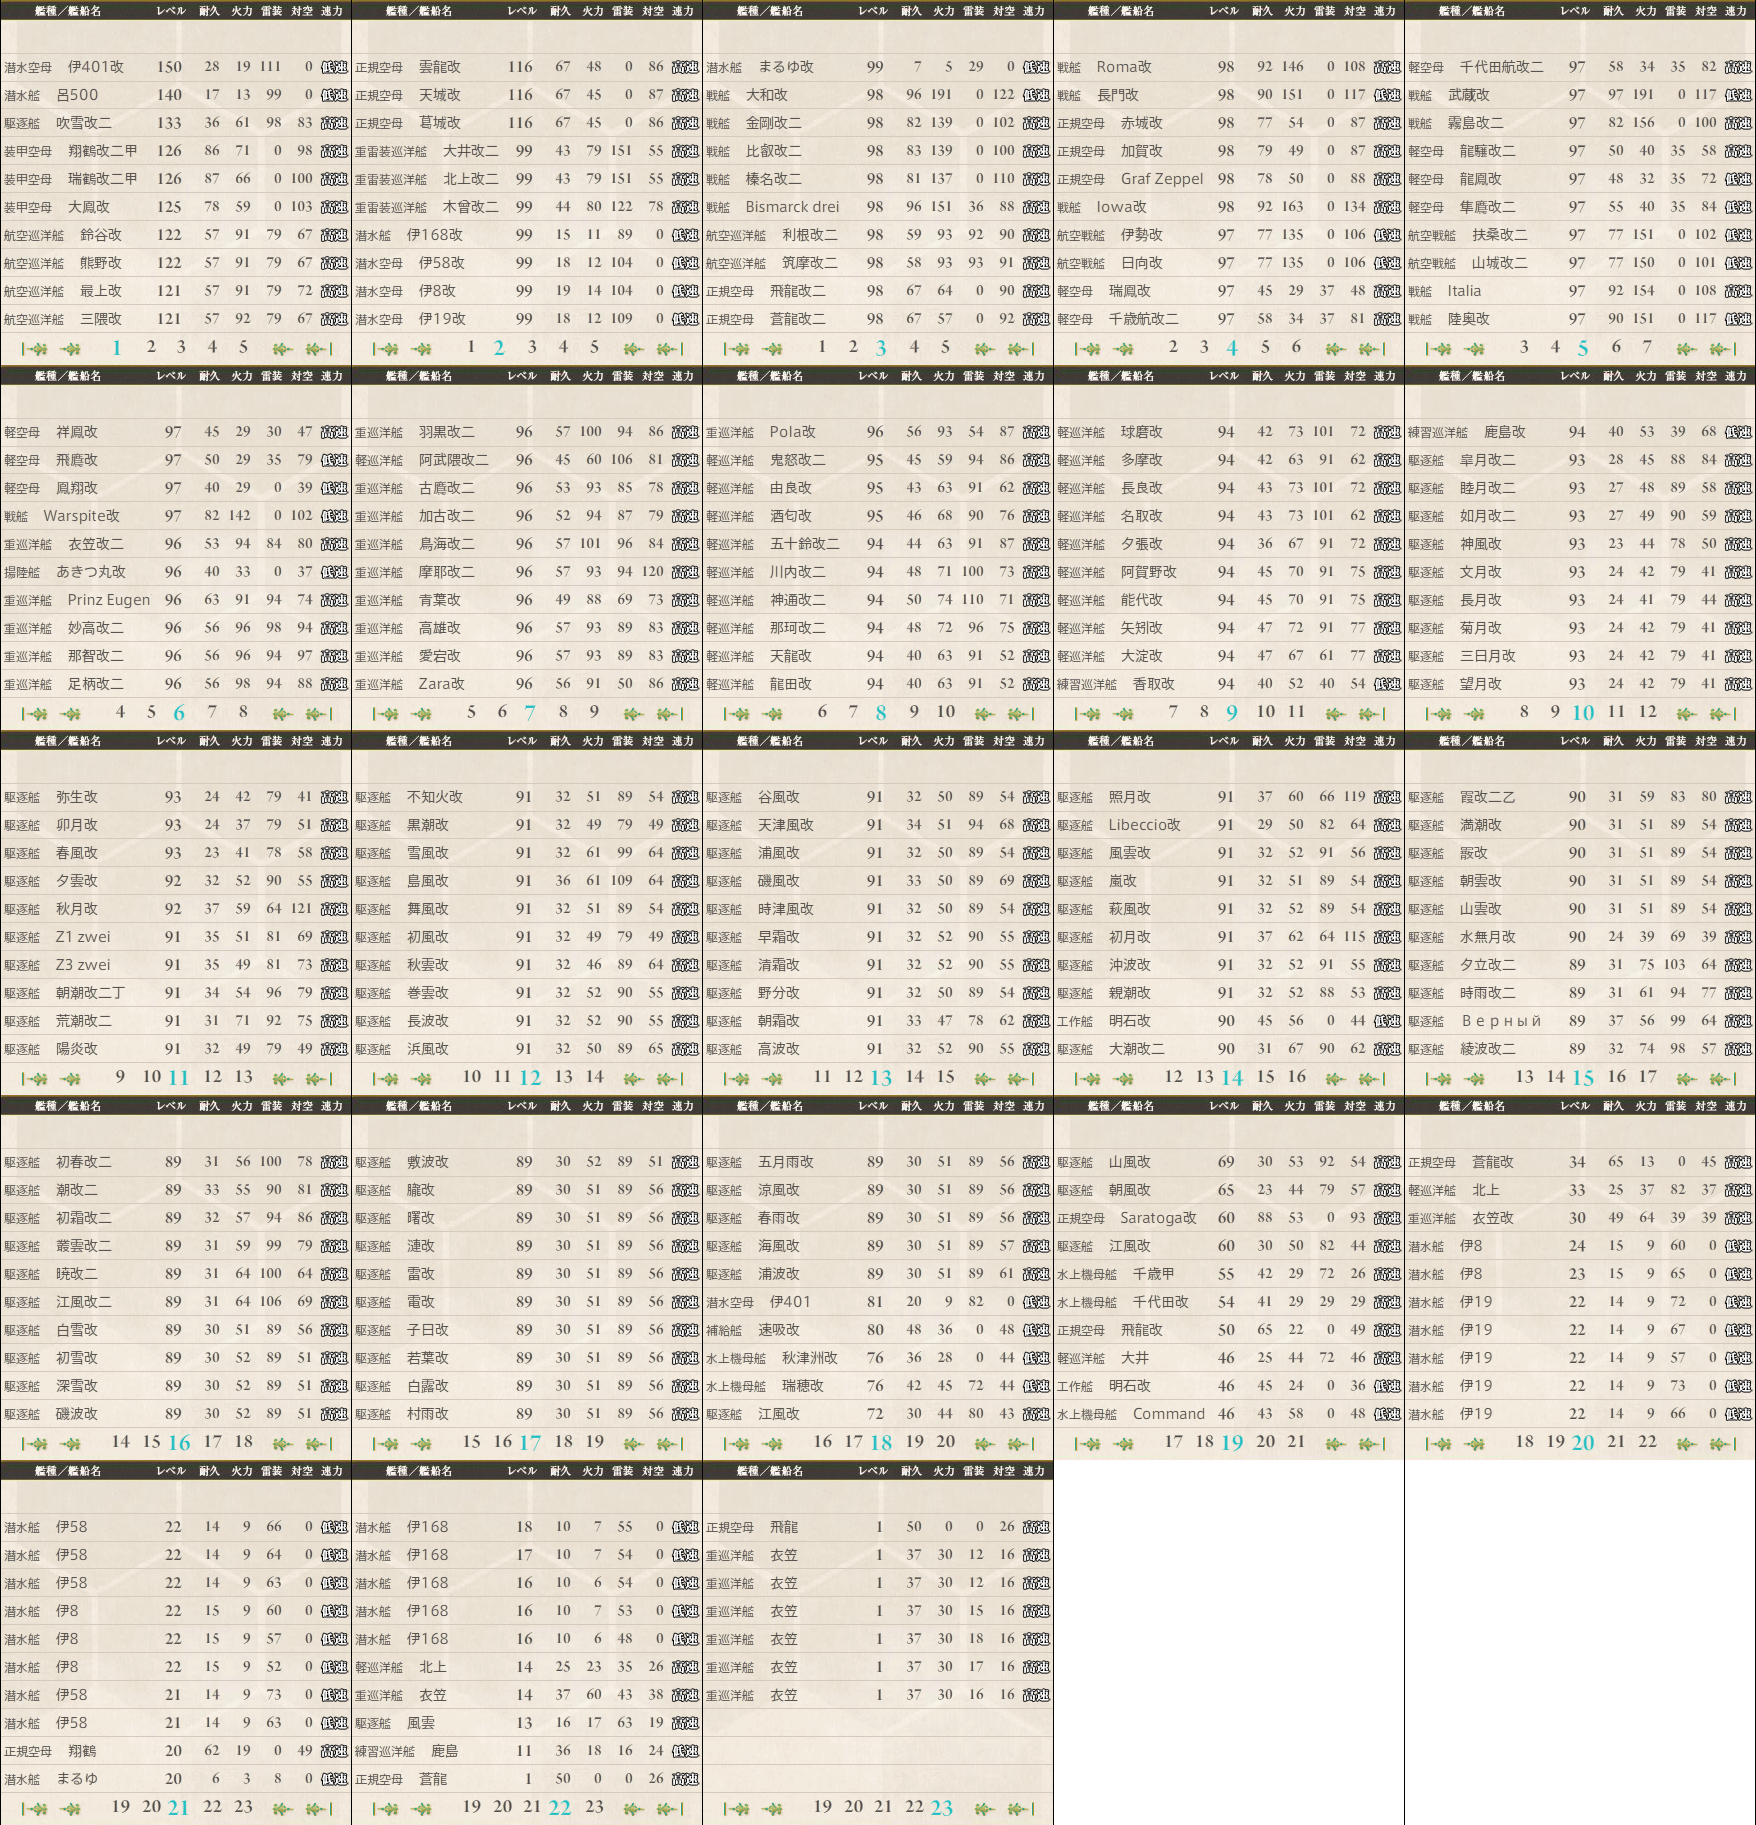 data.kancolle.levelsort.20170205.png